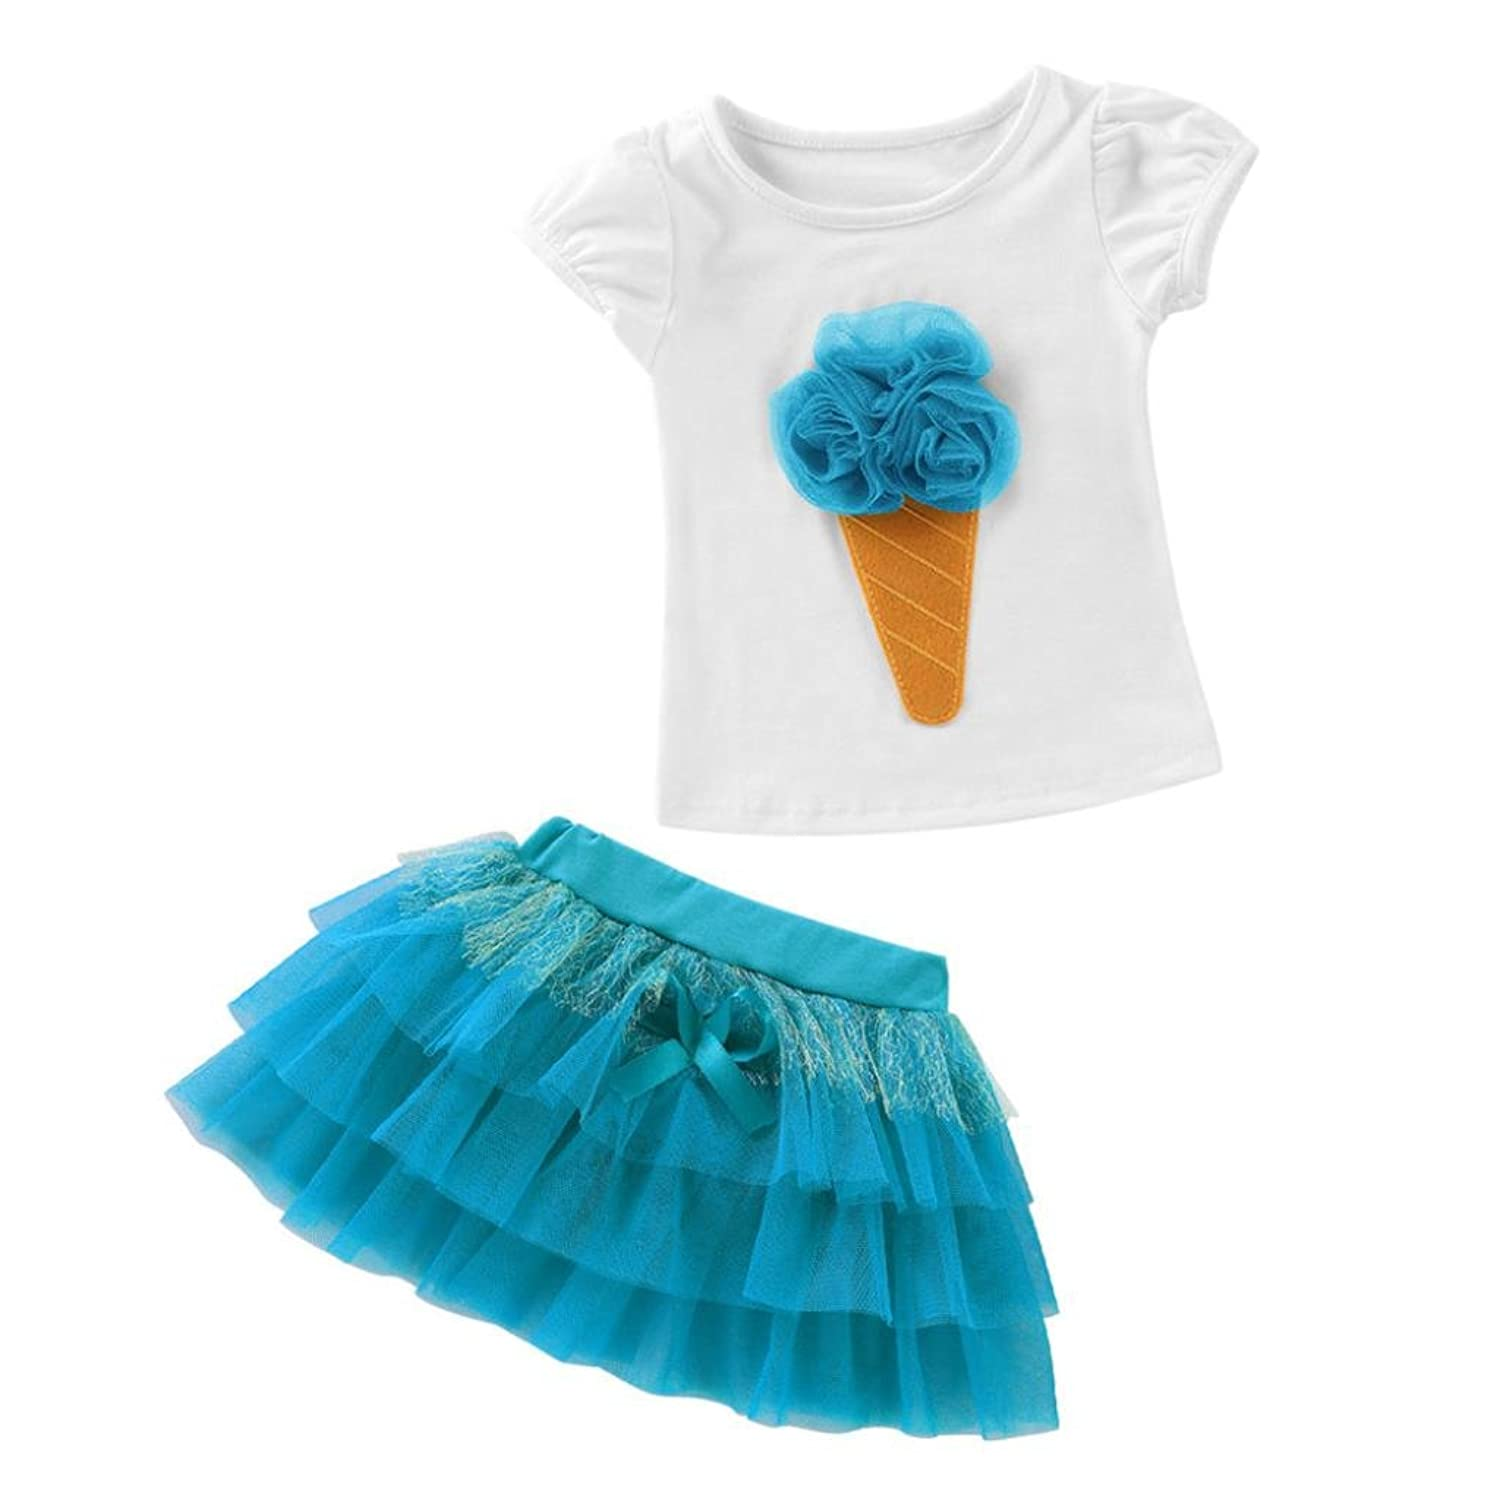 0695db606 ❤2PCS 3D Ice Cream T-shirt Tops+ Tutu Skirt Clothes Outfit Set ❤trinidad  name 9-12 sleepers vachina patterns vegas plastic nautical youre going be  video ...